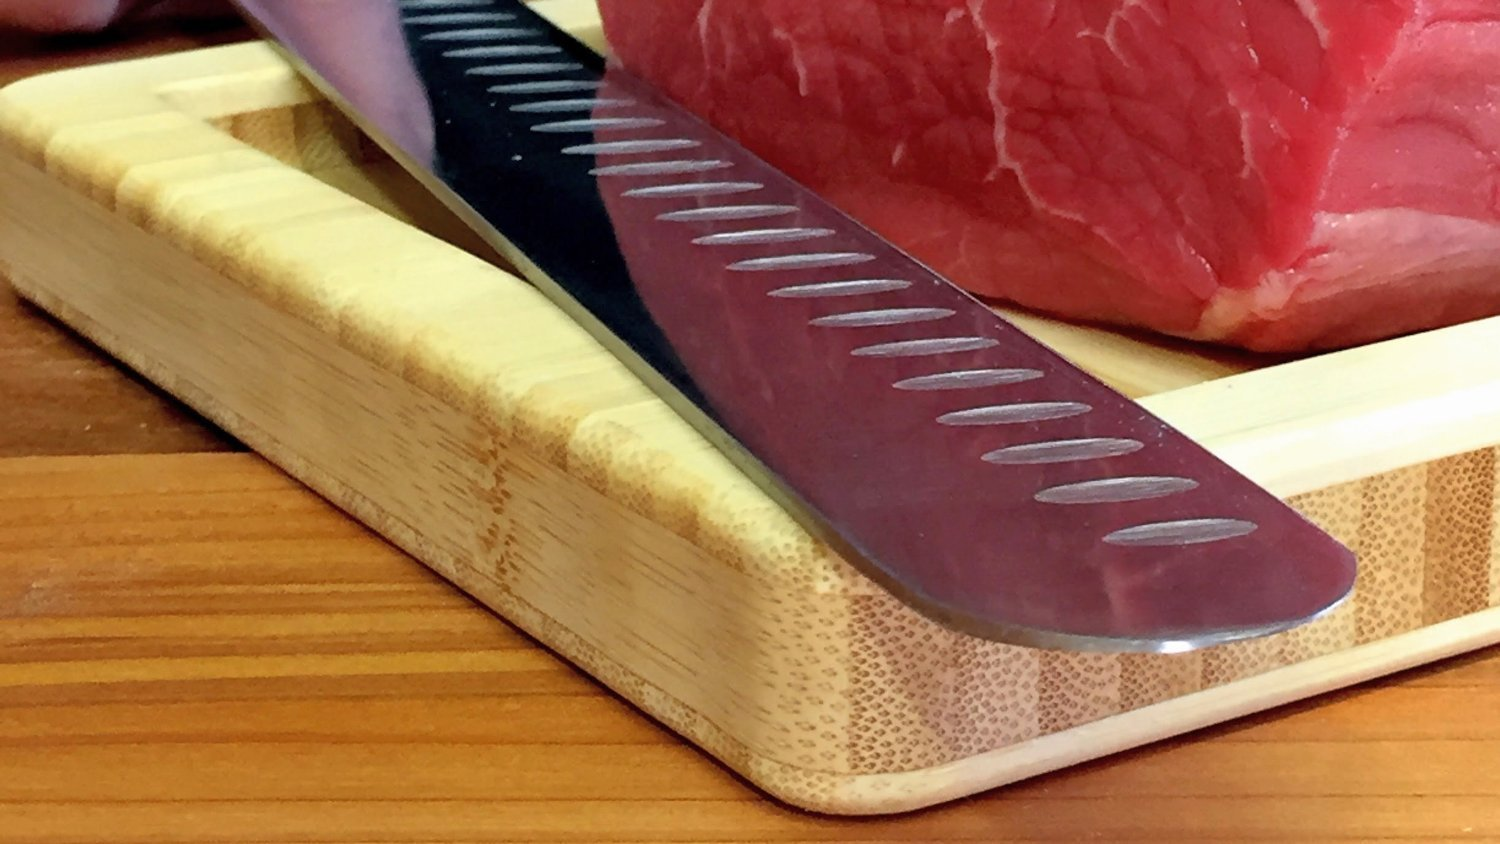 professional jerky meat slicing knife stainless like the pros use